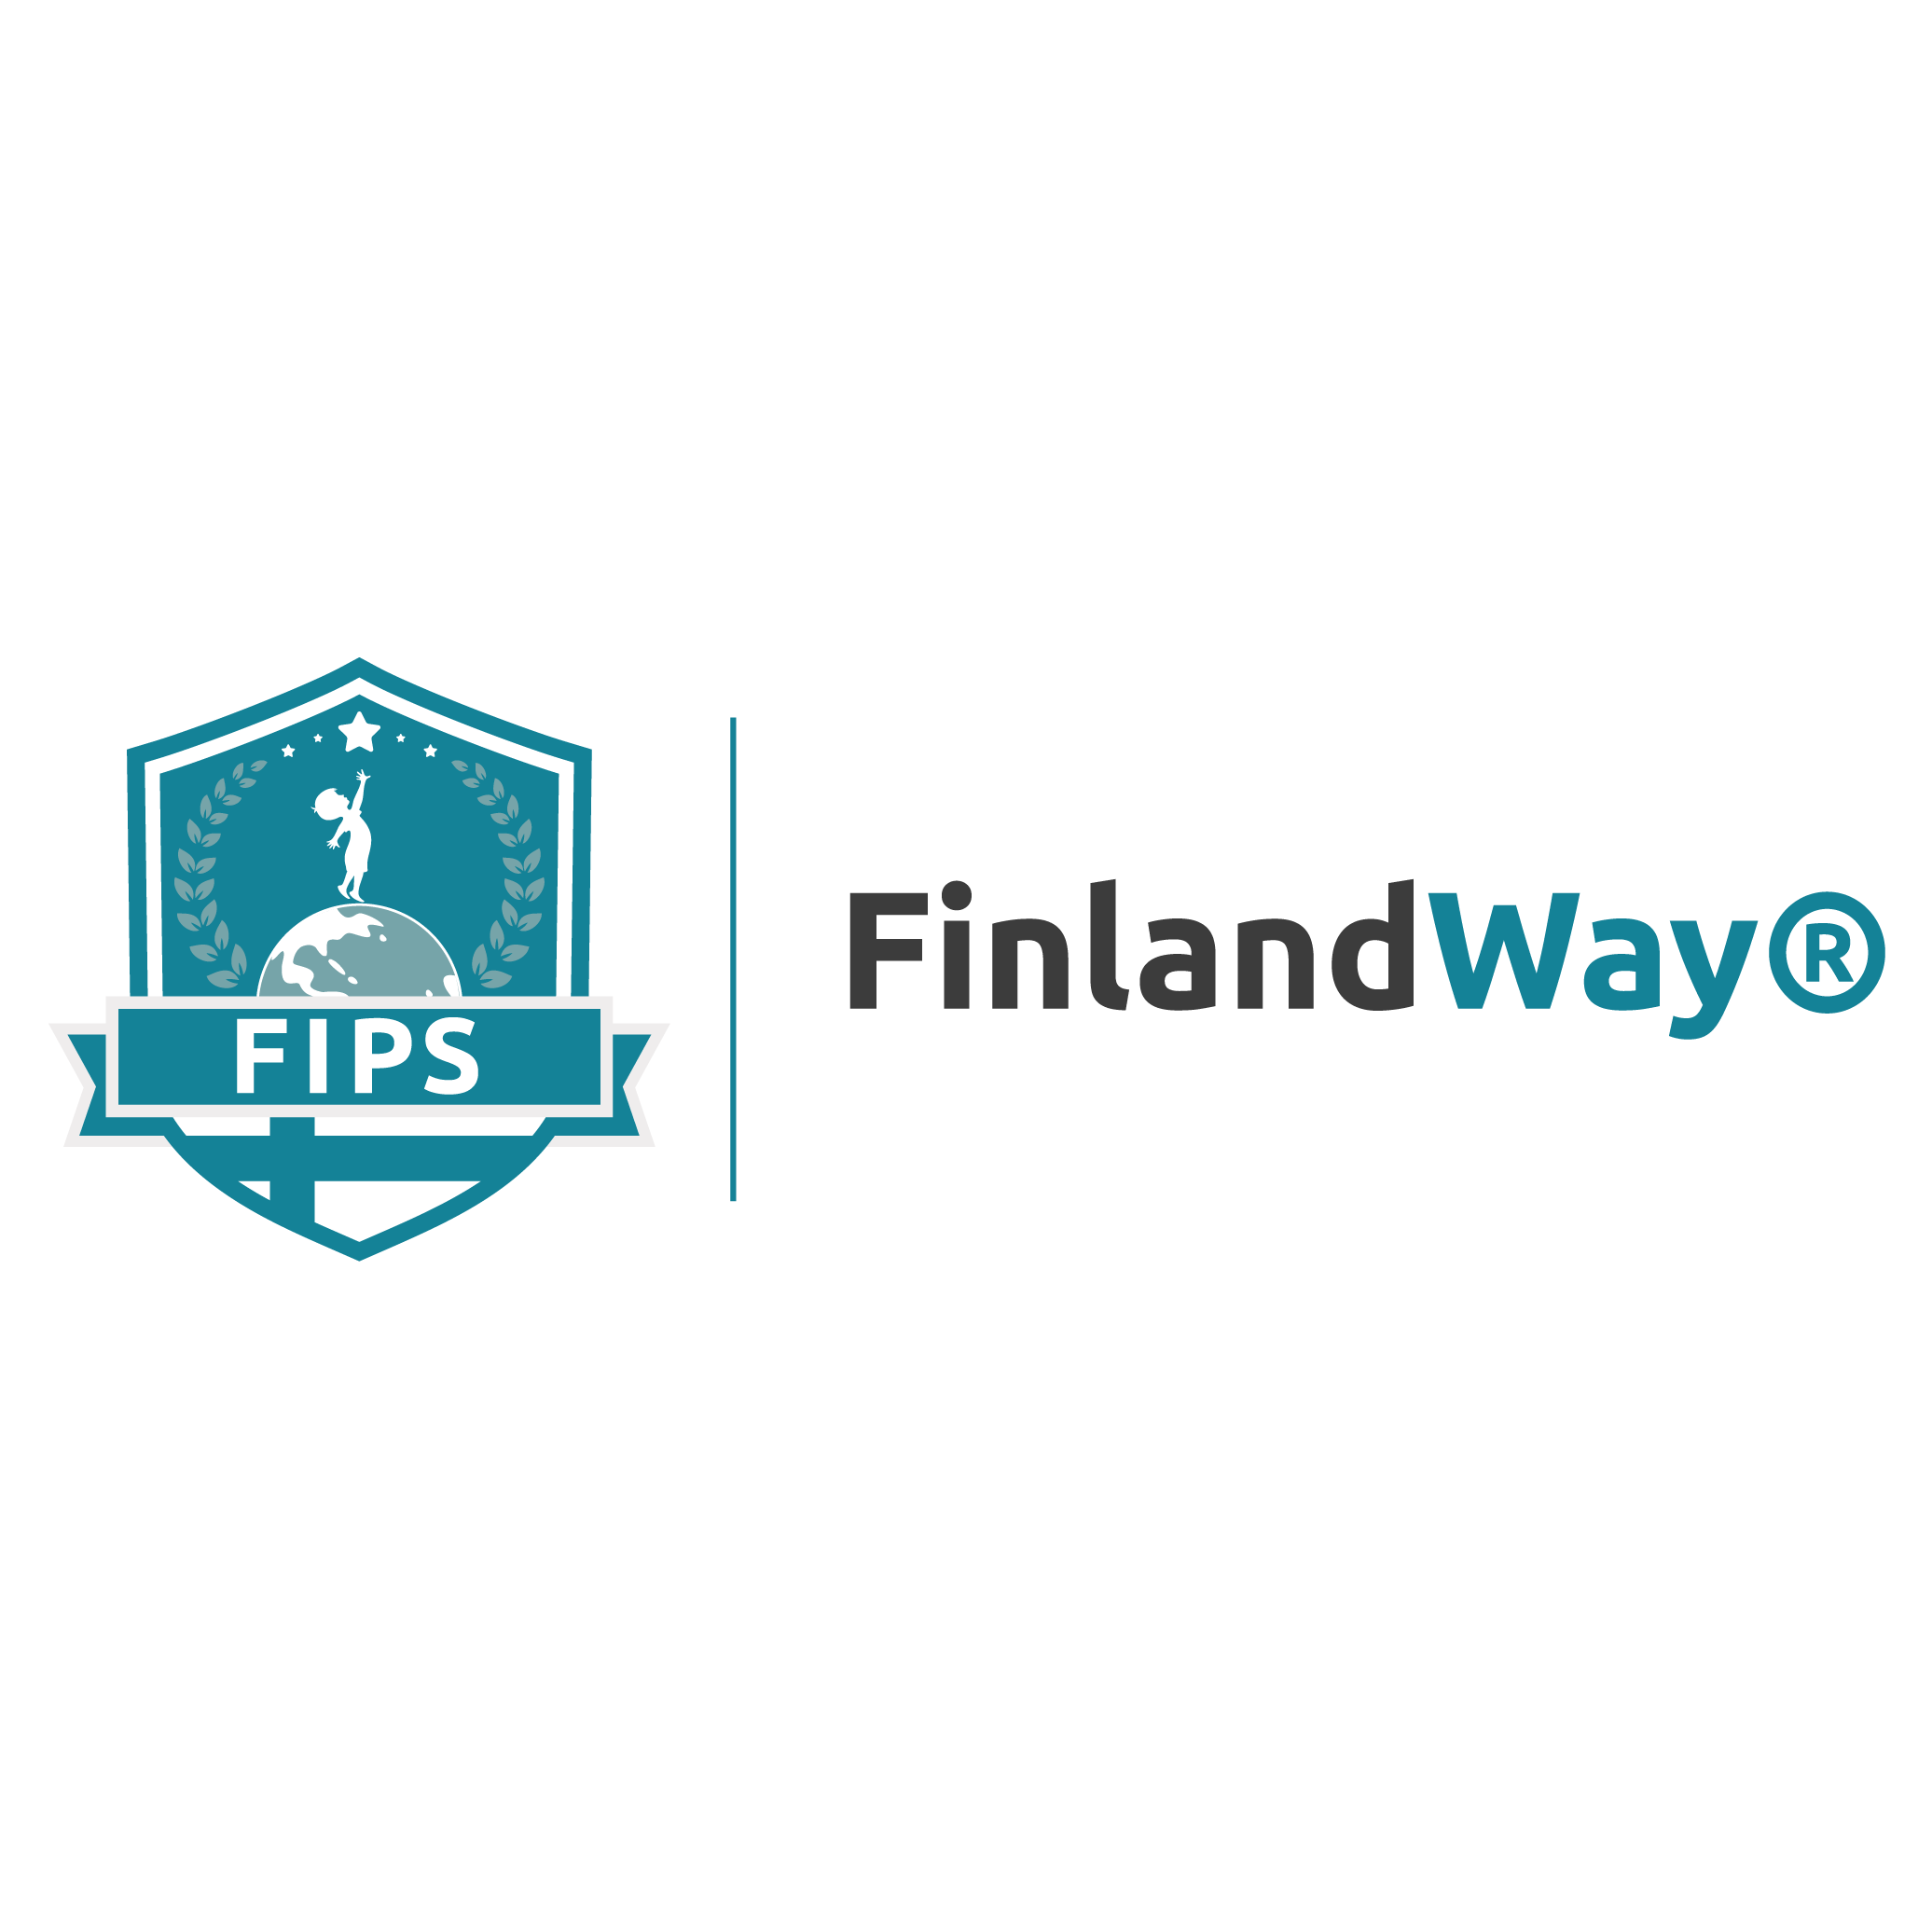 The Finland Preschool - FIPS FinlandWay®     Ho Chi Minh City, Vietnam   The first authentic preschool from Finland in Vietnam to bring the world's best early childhood education to children ages 0-5.